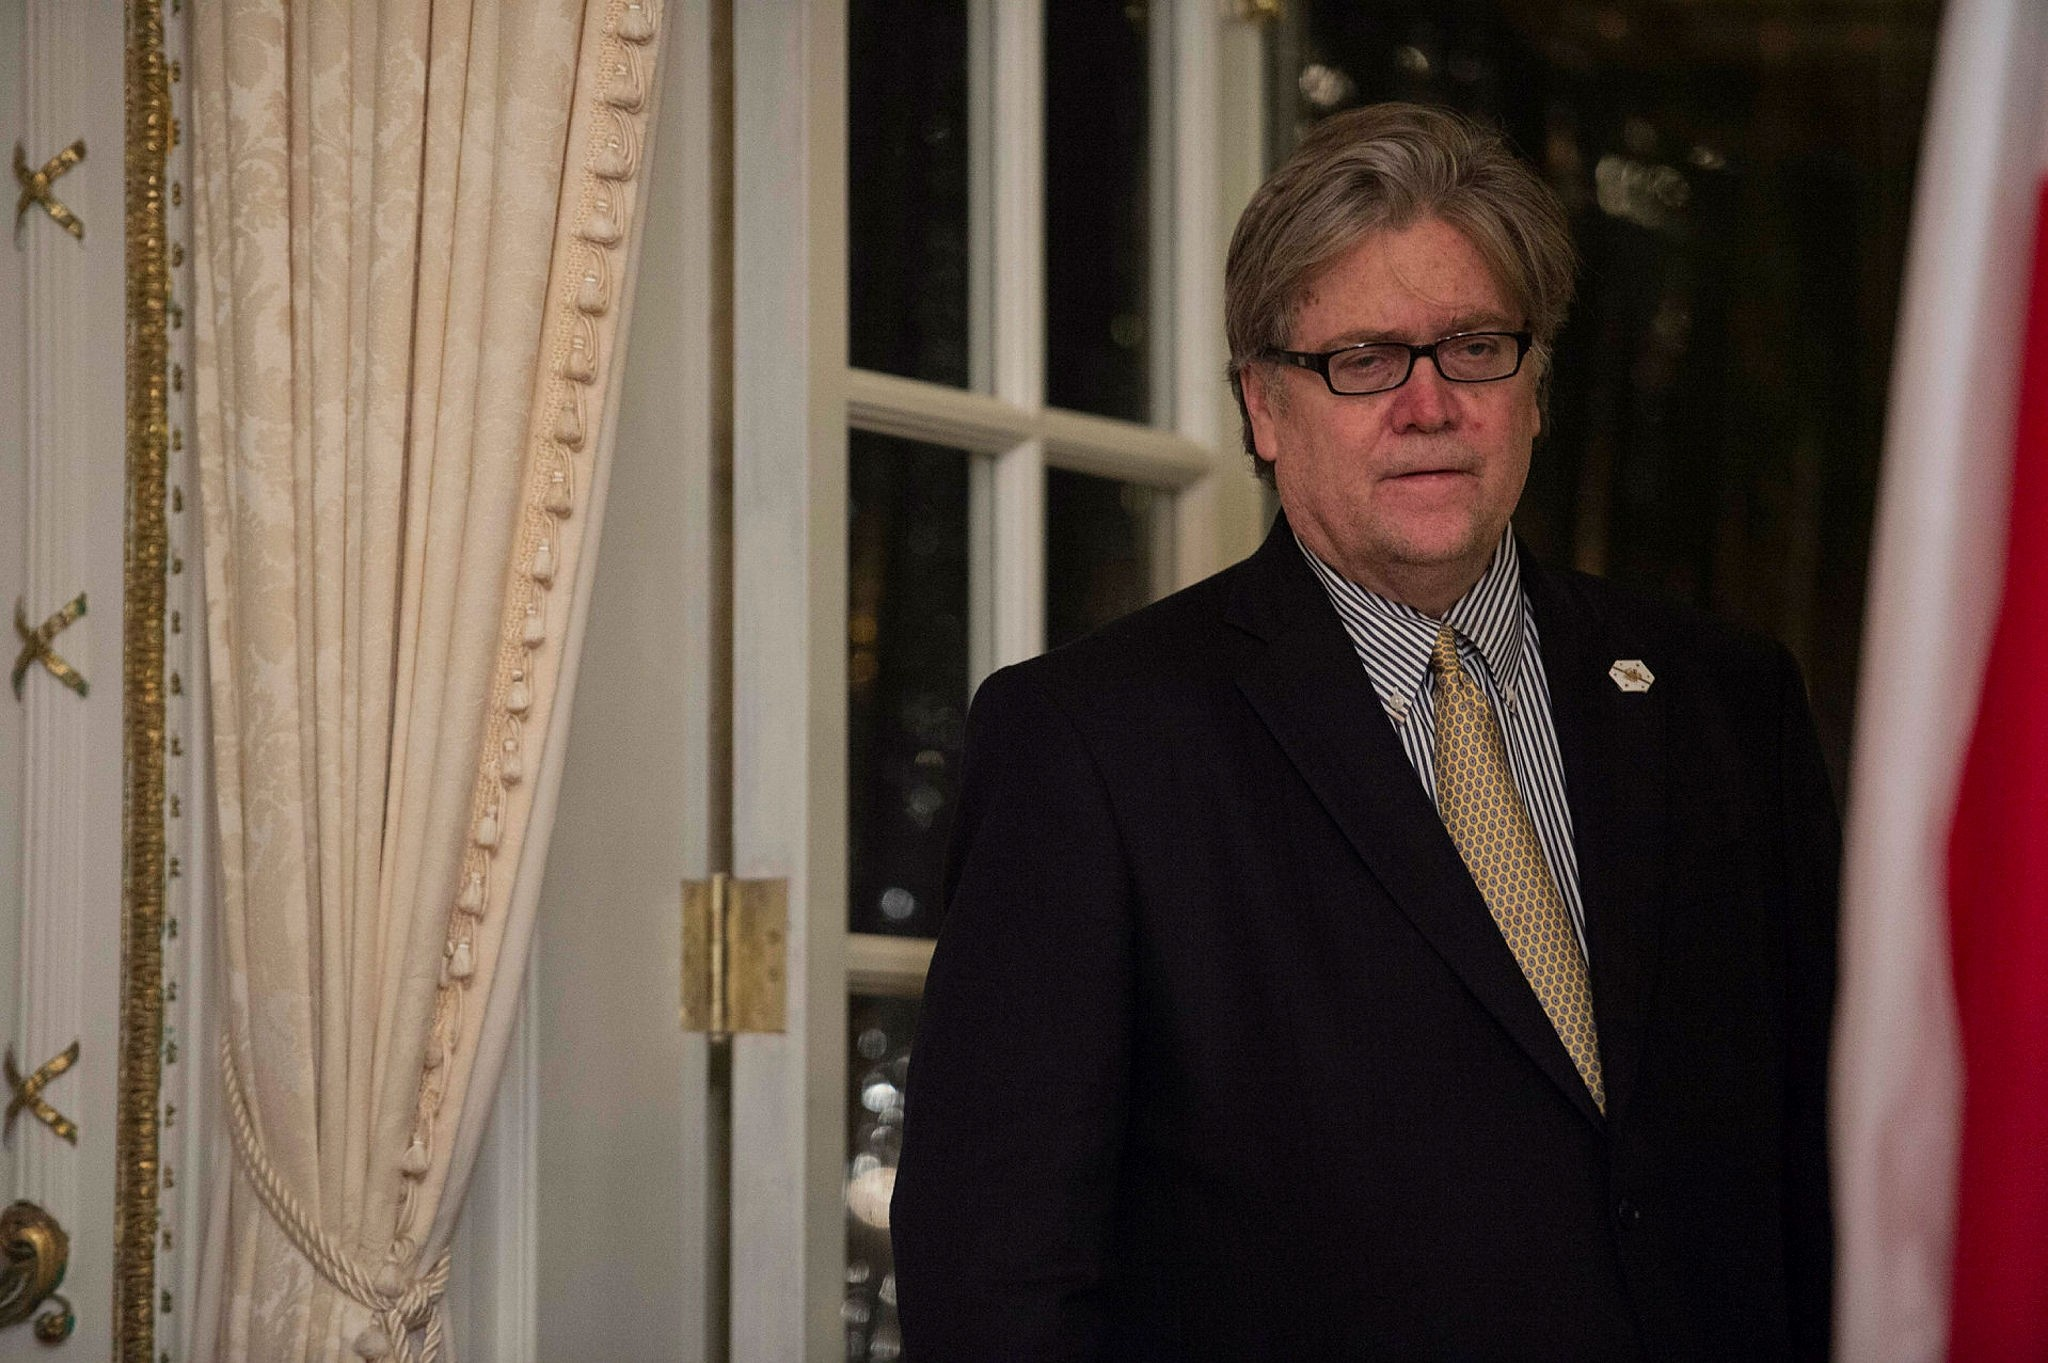 This February 11, 2017 file photo shows Steve Bannon, then US President Donald Trump's chief strategist, standing aside at Trump's Mar-a-Lago resort in Palm Beach, Florida (AFP Photo)